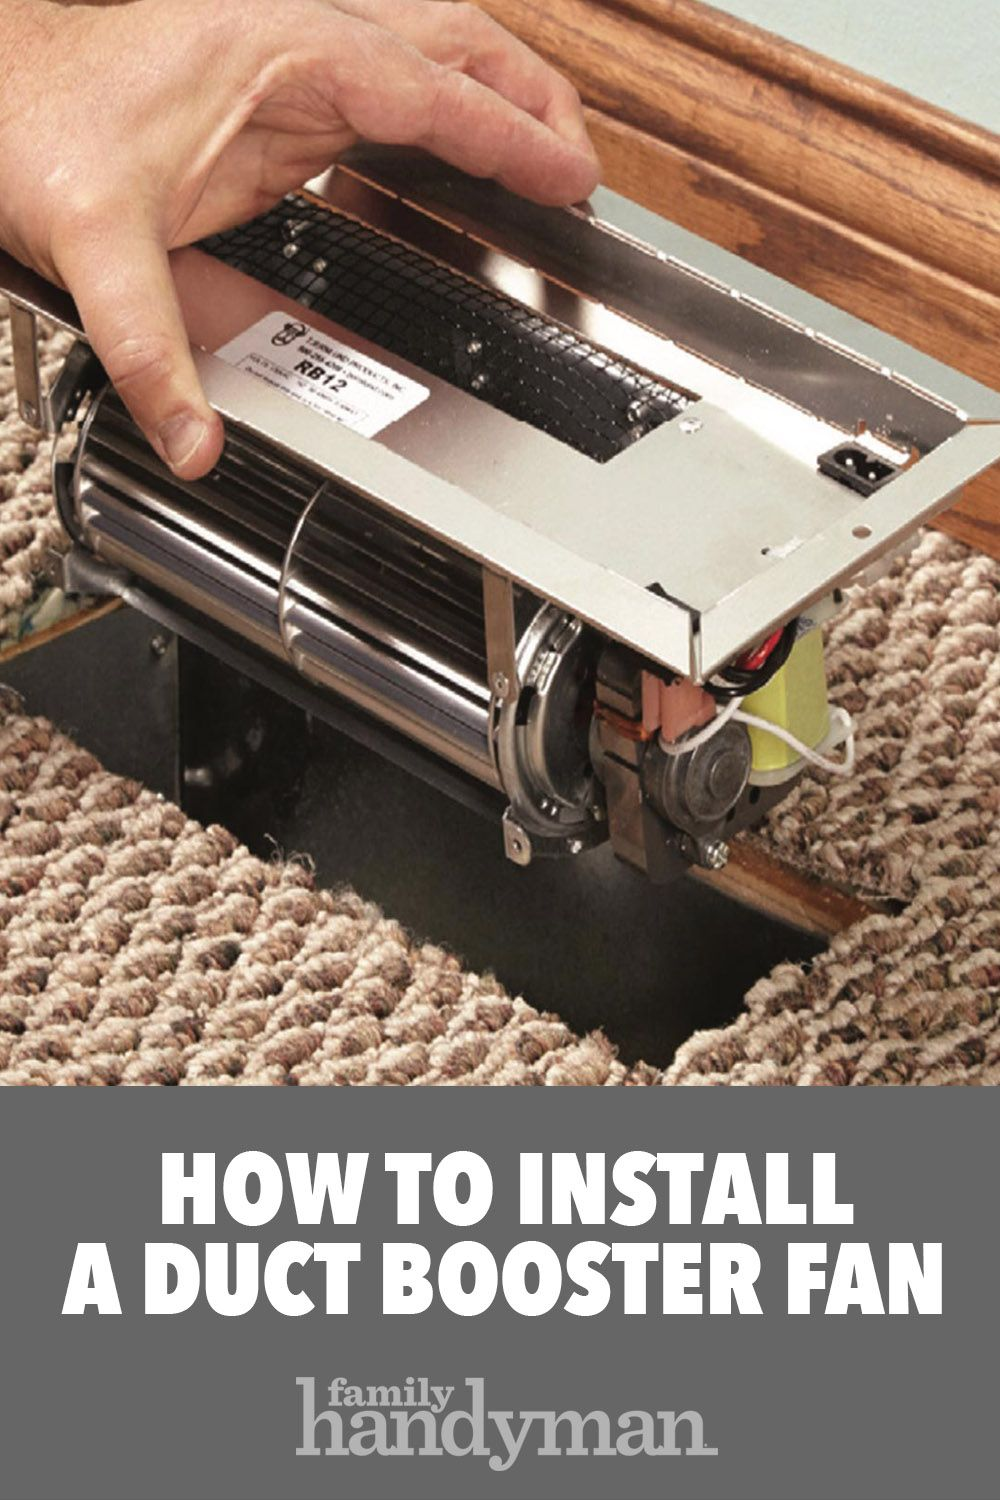 How to Install a Duct Booster Fan Home maintenance, Diy